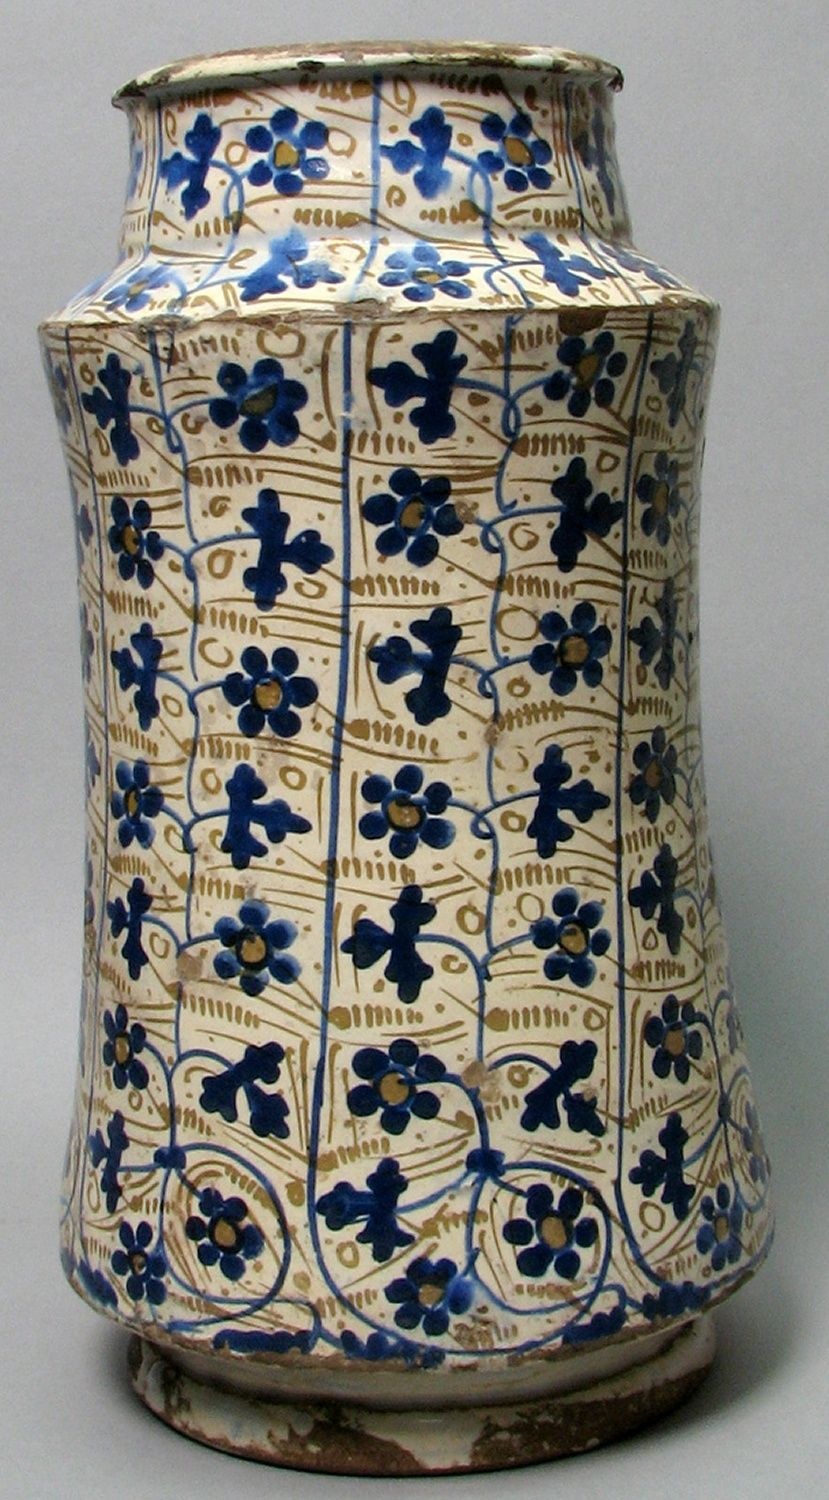 A lusterware albarello or pharmacy jar patterned with stylized bryony vines